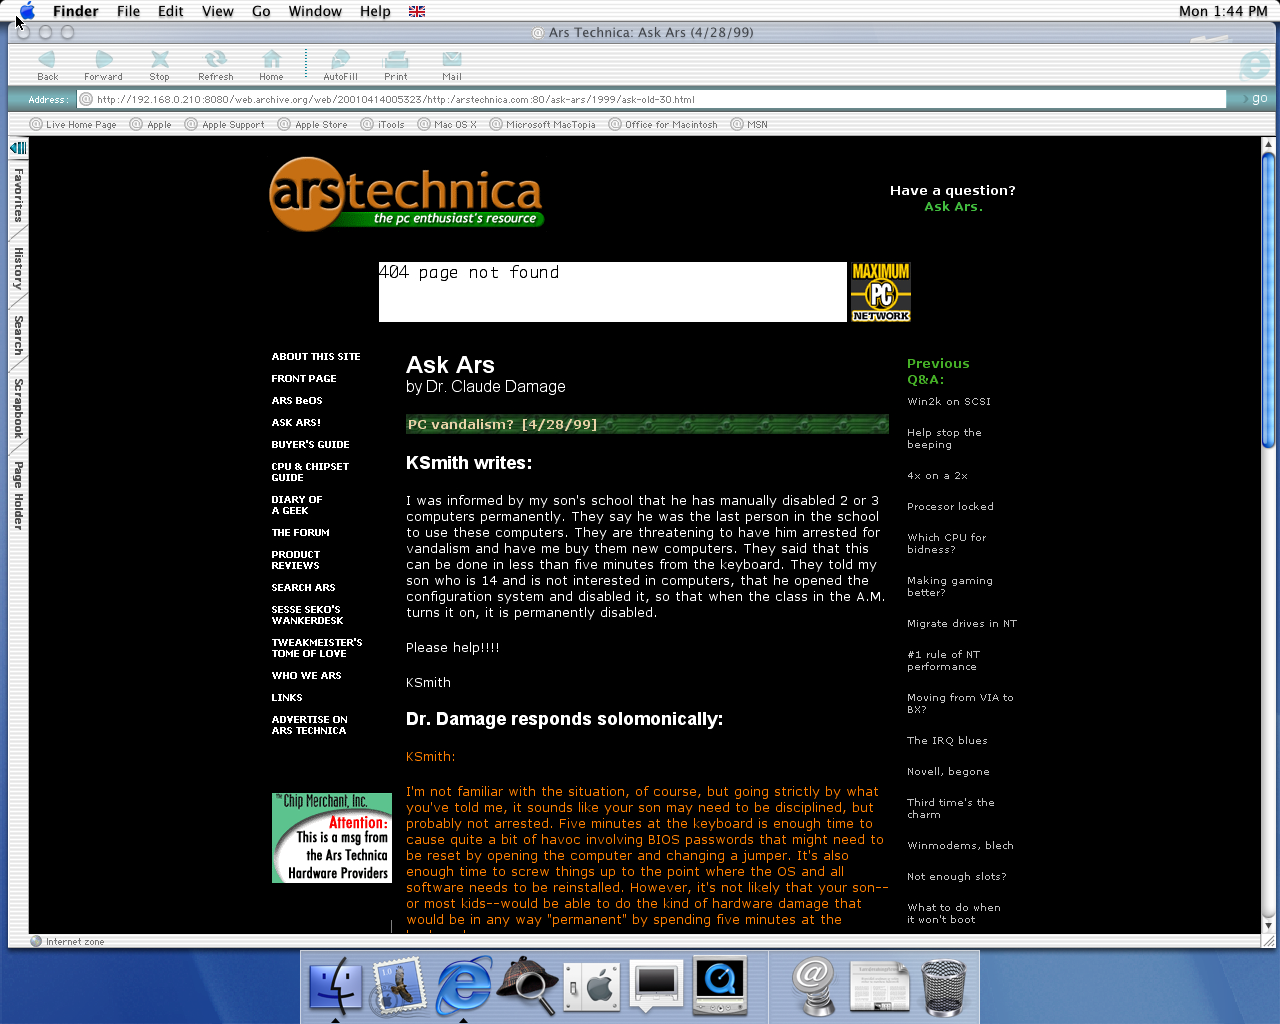 OS X 10.0 PPC with Microsoft Internet Explorer 5.1 for Mac Preview displaying a page from Arstechnica.com archived at April 14, 2001 at 00:53:23